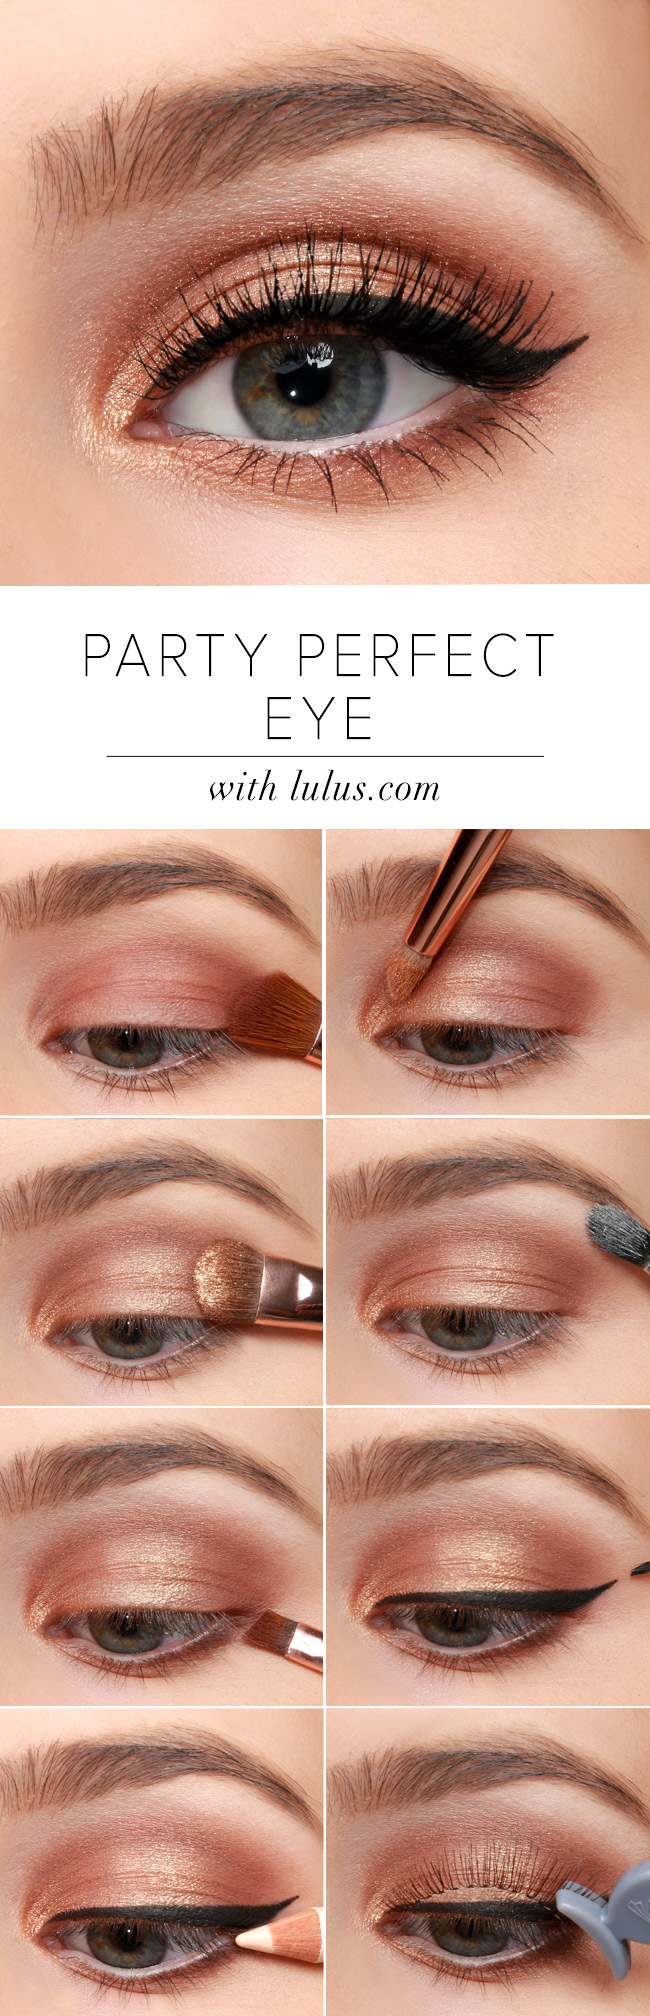 Lulus how to party perfect eye makeup tutorial lulus lulus how to party perfect eye makeup tutorial at lulus baditri Images